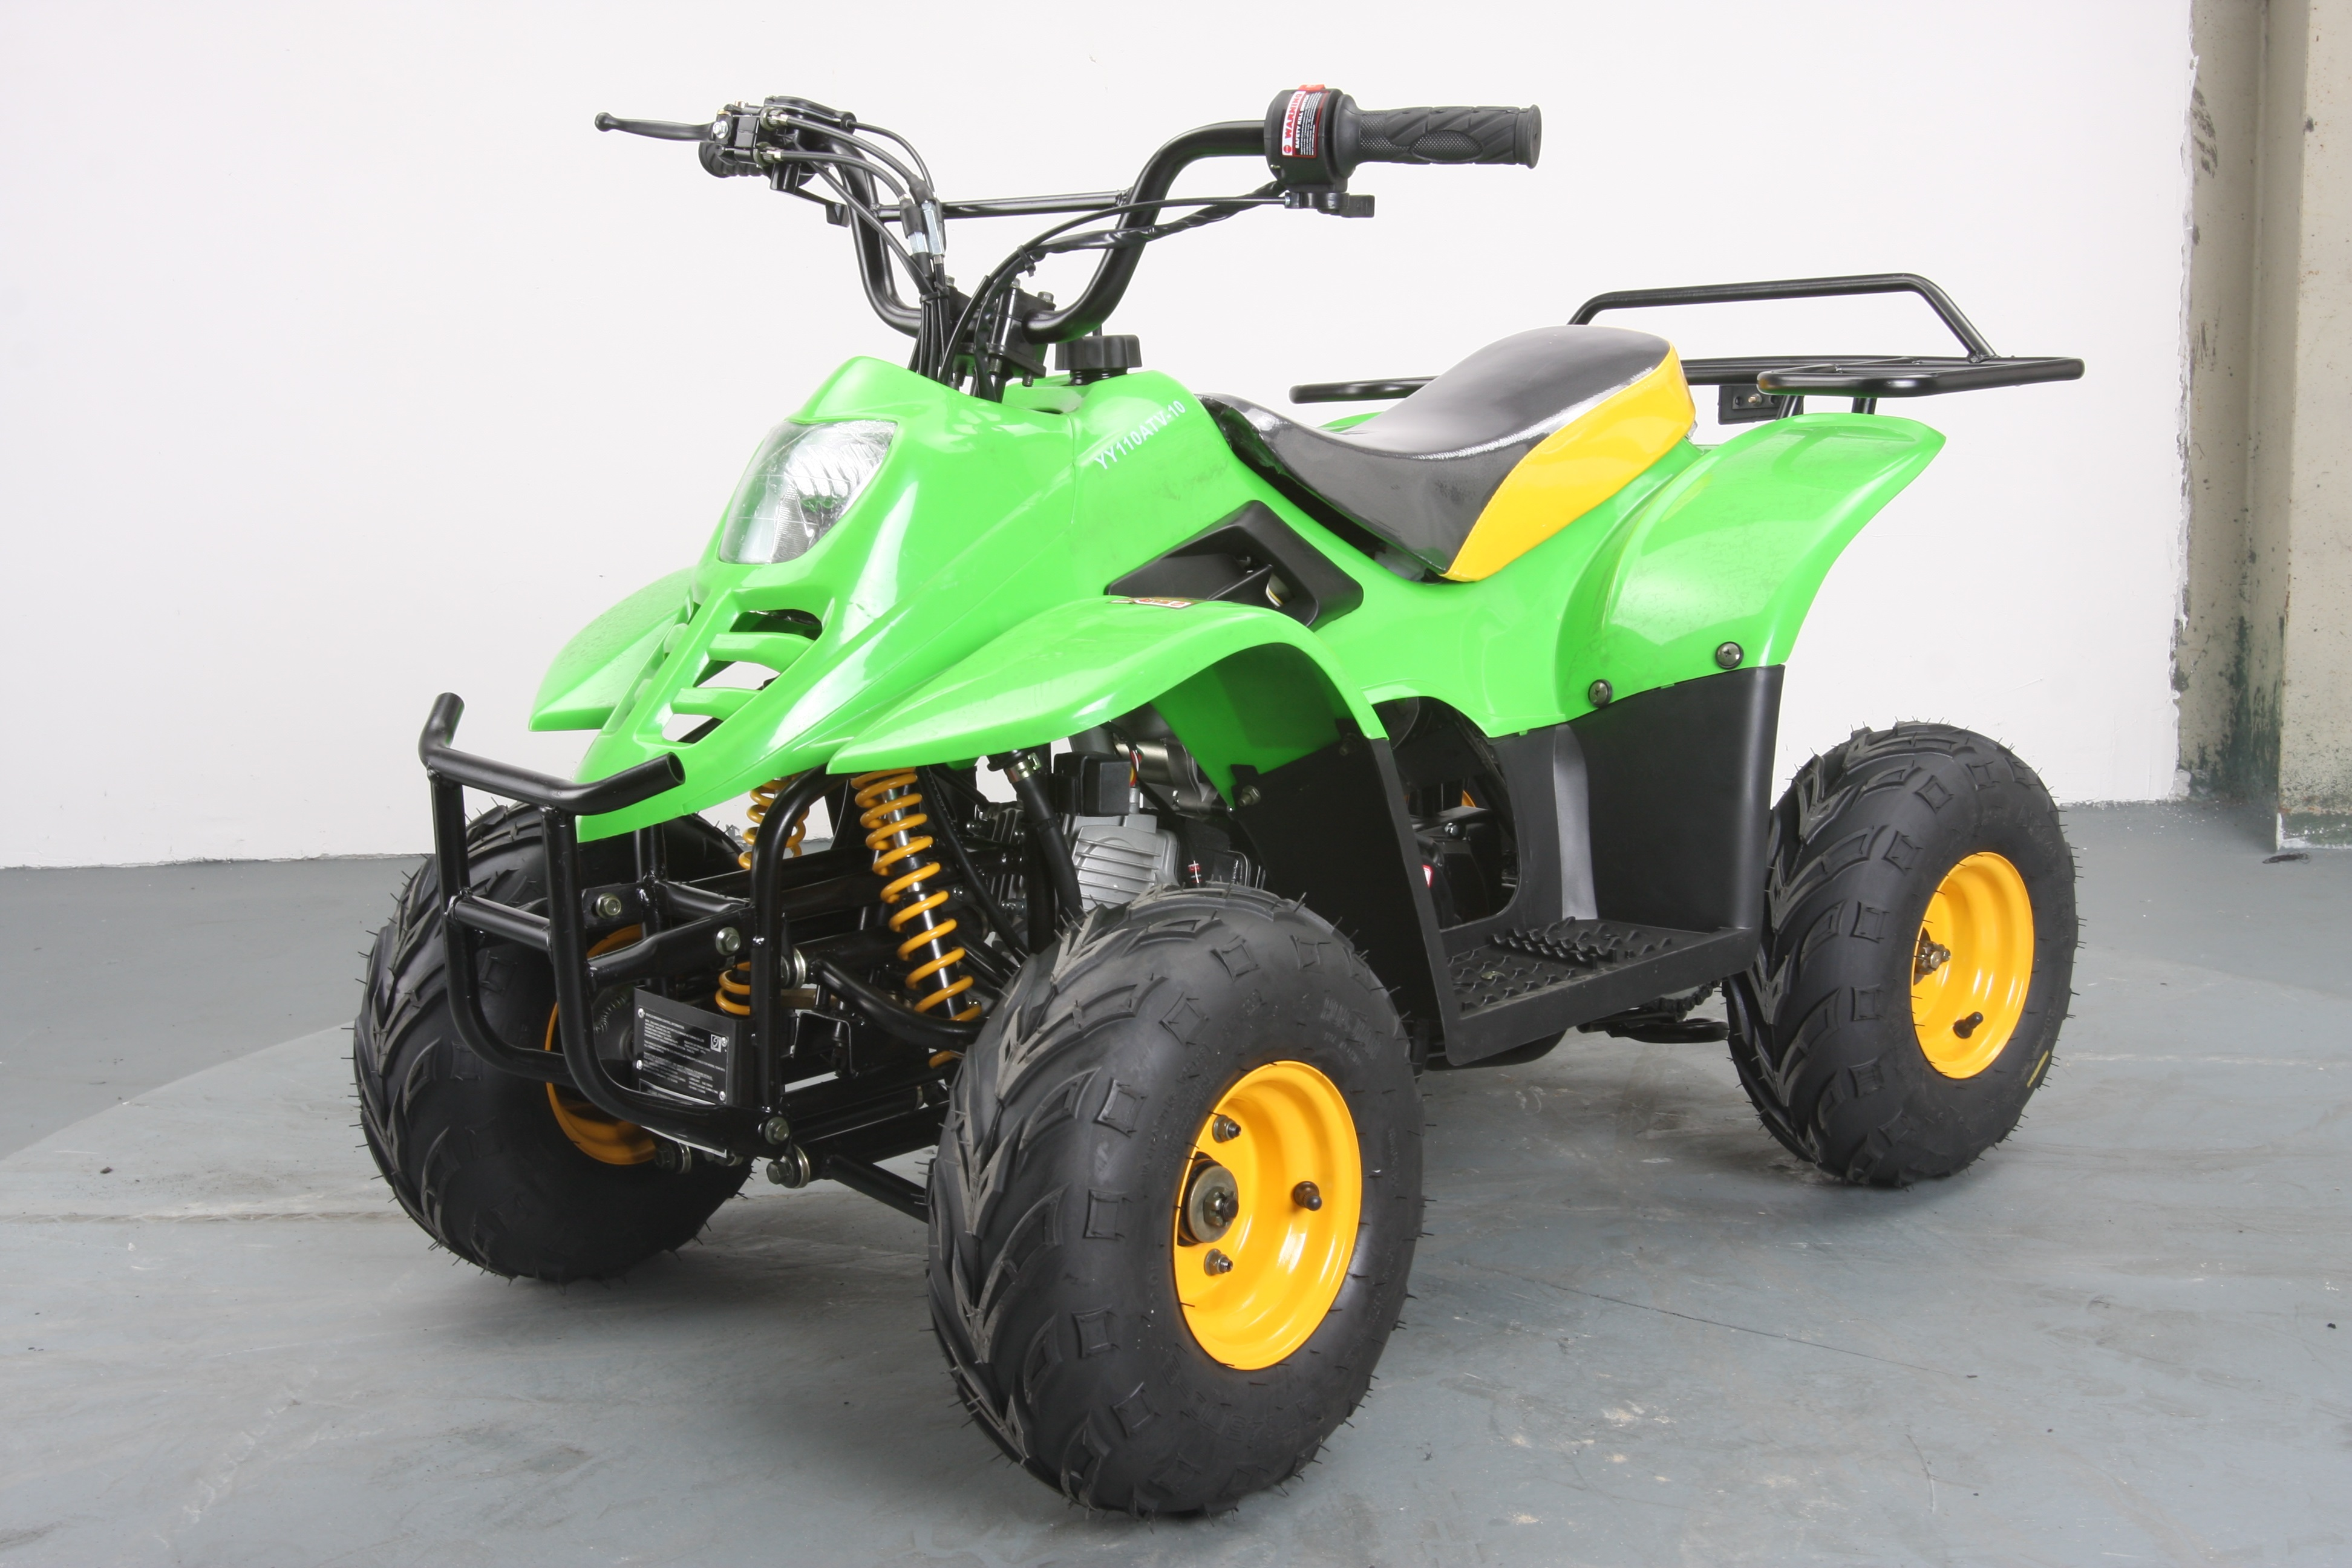 Hawk 6 110cc Atv Get The Max Out Of Life Kill Remote Control Wiring 110 Yellowgreen